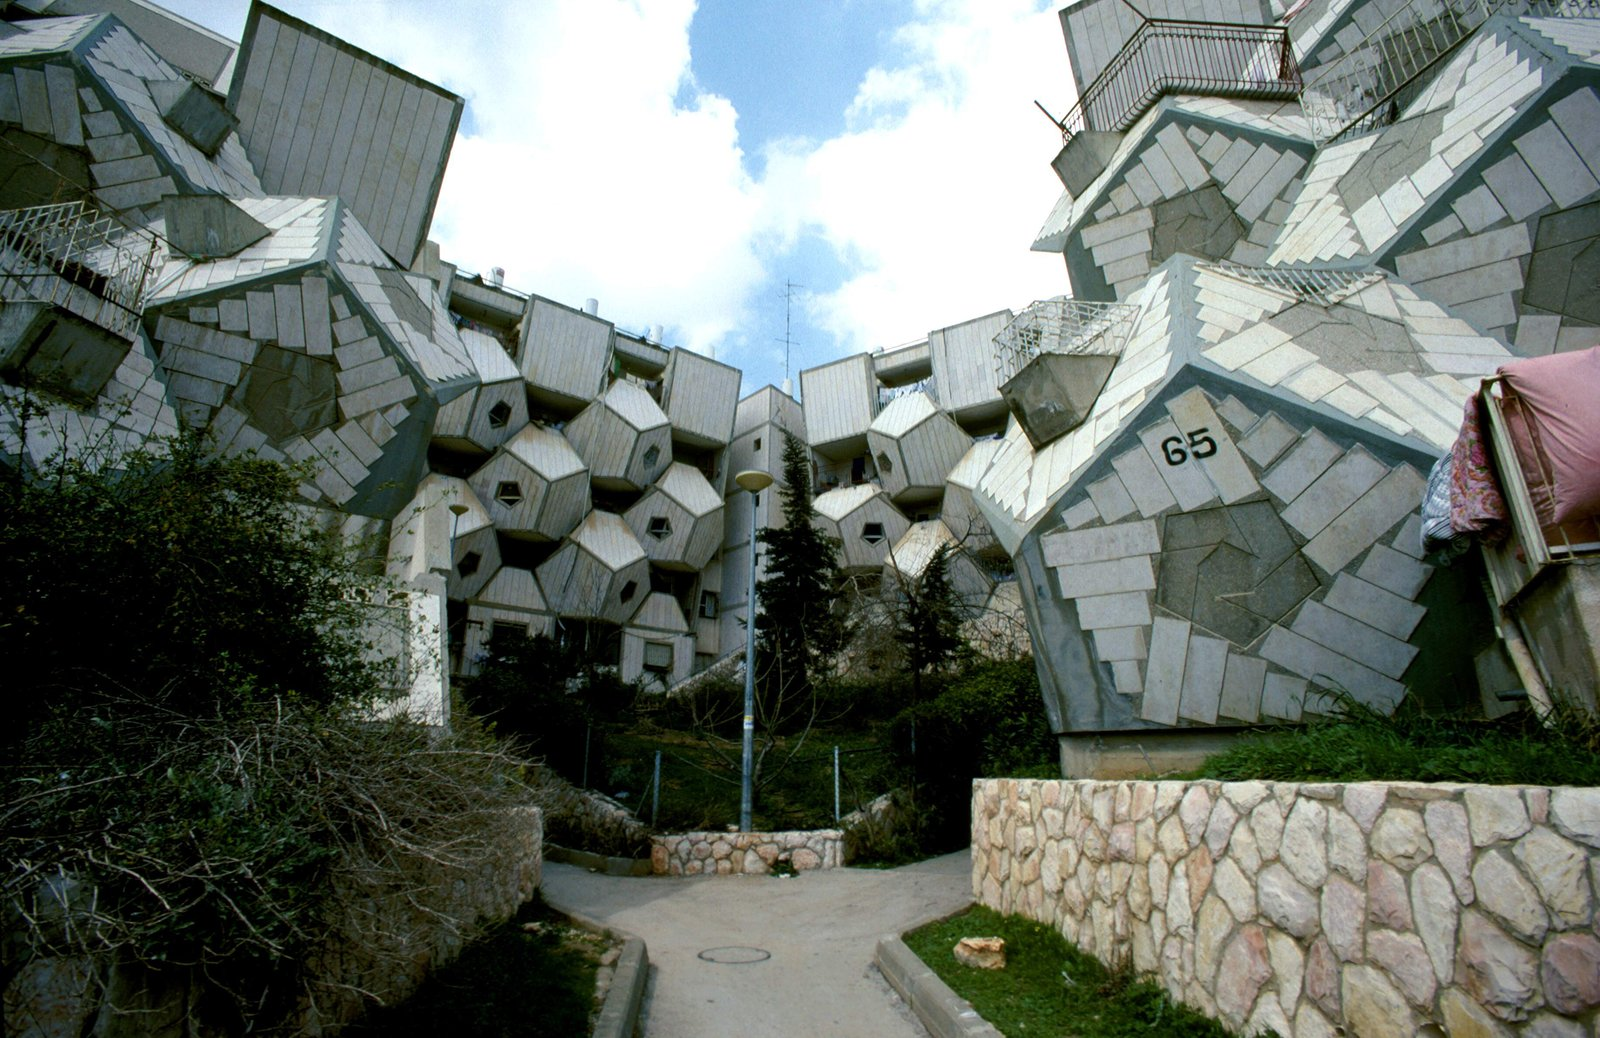 """Polish-born Israeli architect Zvi Hecker spent much of his career exploring cubes and dodecahedrons in his work. One of his most famous structures is the Ramot Polin housing project in Jerusalem erected for an ultra-orthodox population. The hivelike prefabricated building was lauded when it was completed in the 1970s. Over the years, people have adapted the structures and reports say that there isn't a single """"original"""" apartment left in the 700+ units."""